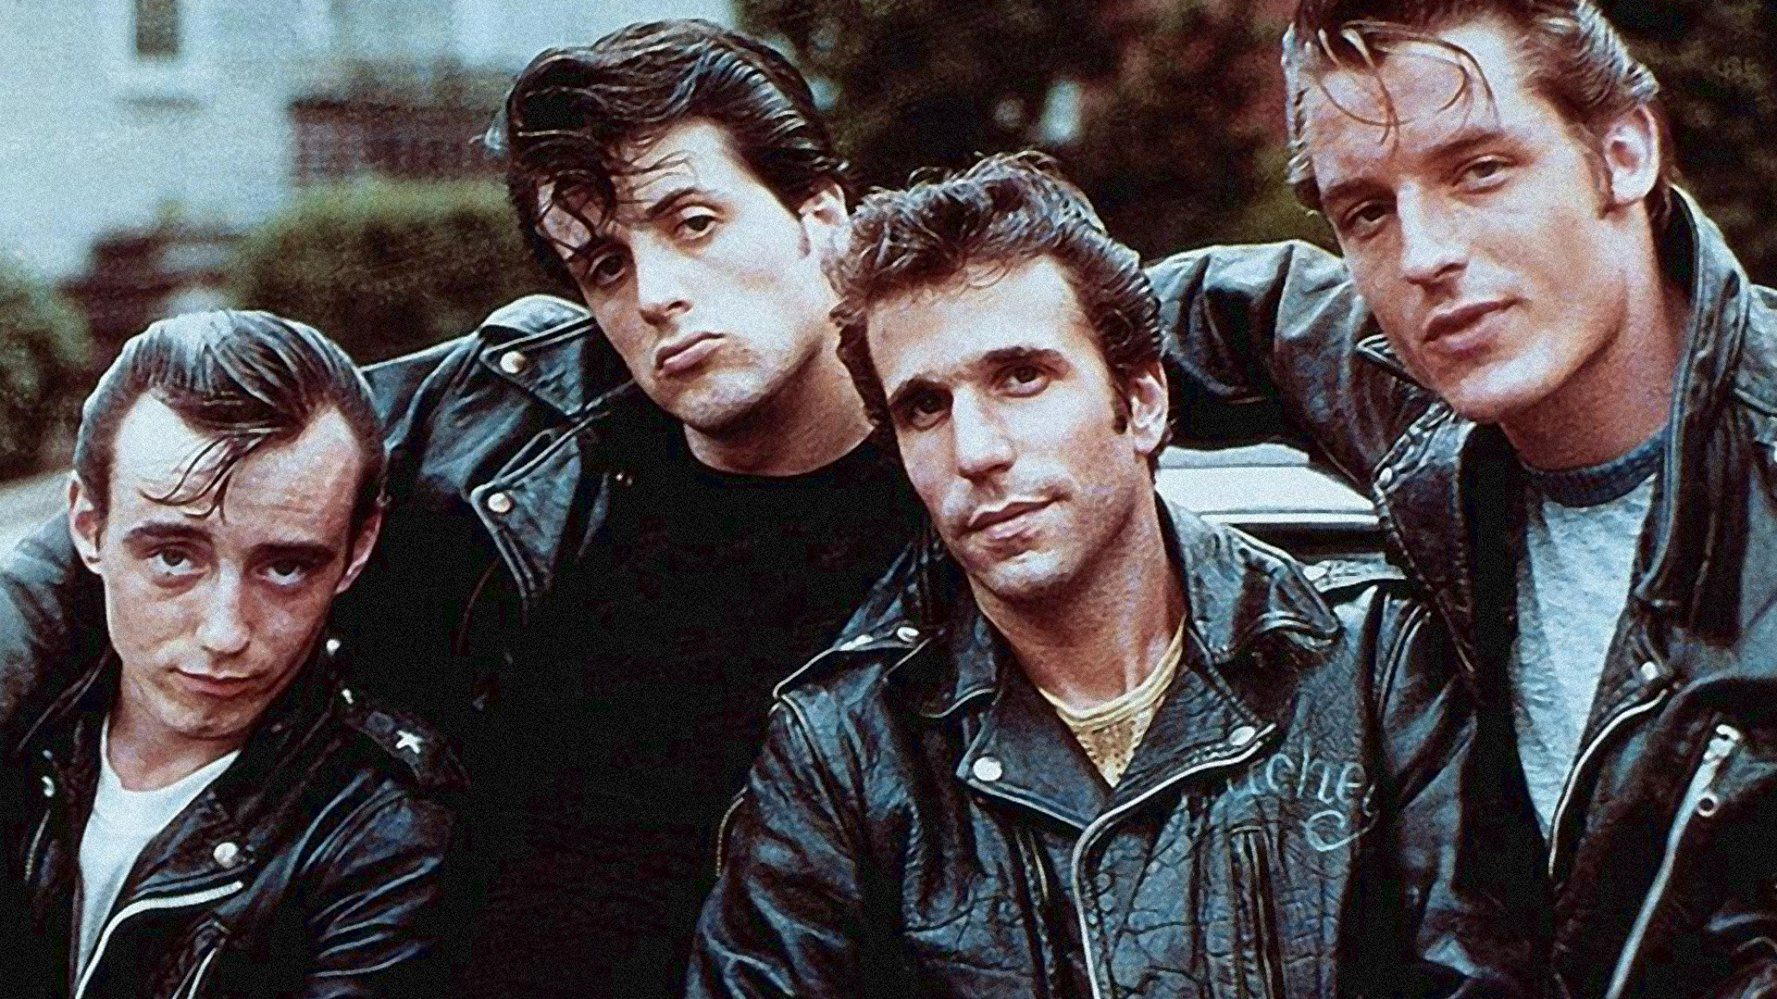 Paul Mace, Sylvester Stallone, Henry Winkler, and Perry King in The Lords of Flatbush